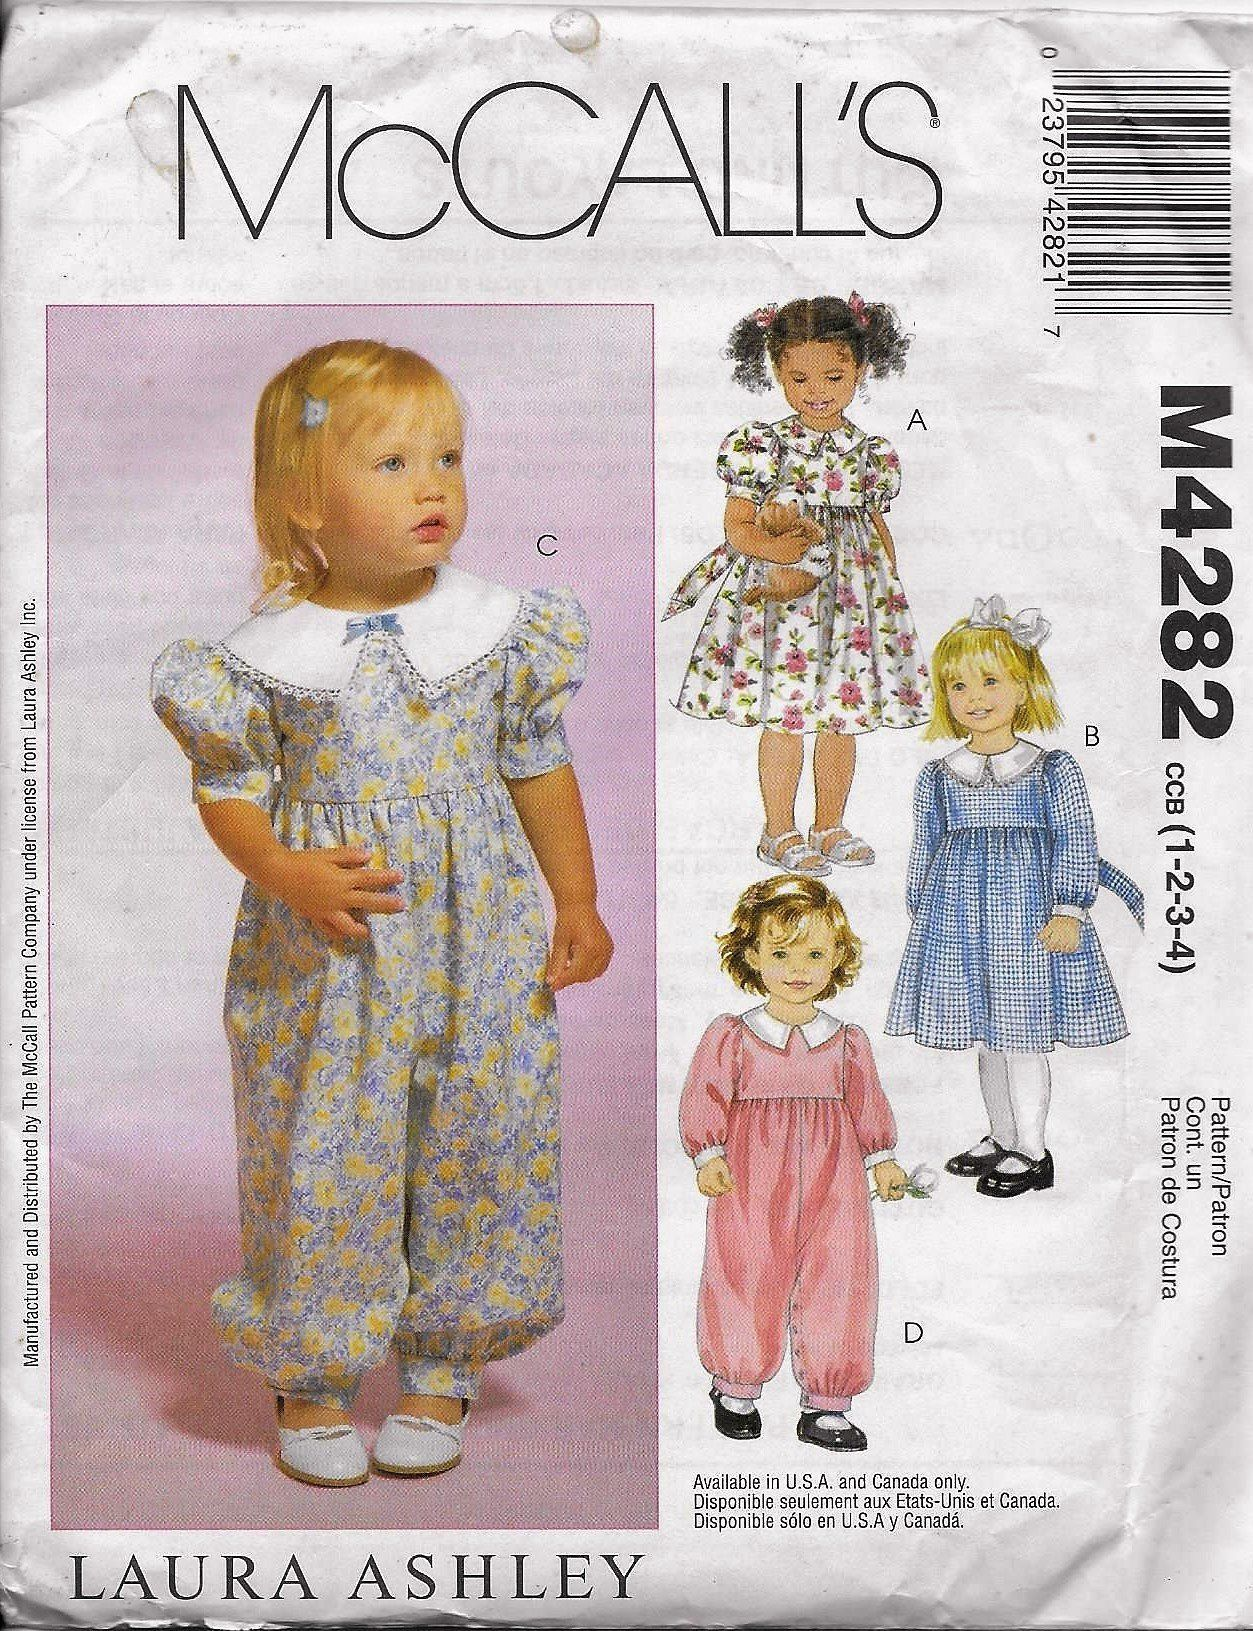 638436a58213 McCall's 4282 Laura Ashley Sewing Pattern, Toddlers' Dresses And ...